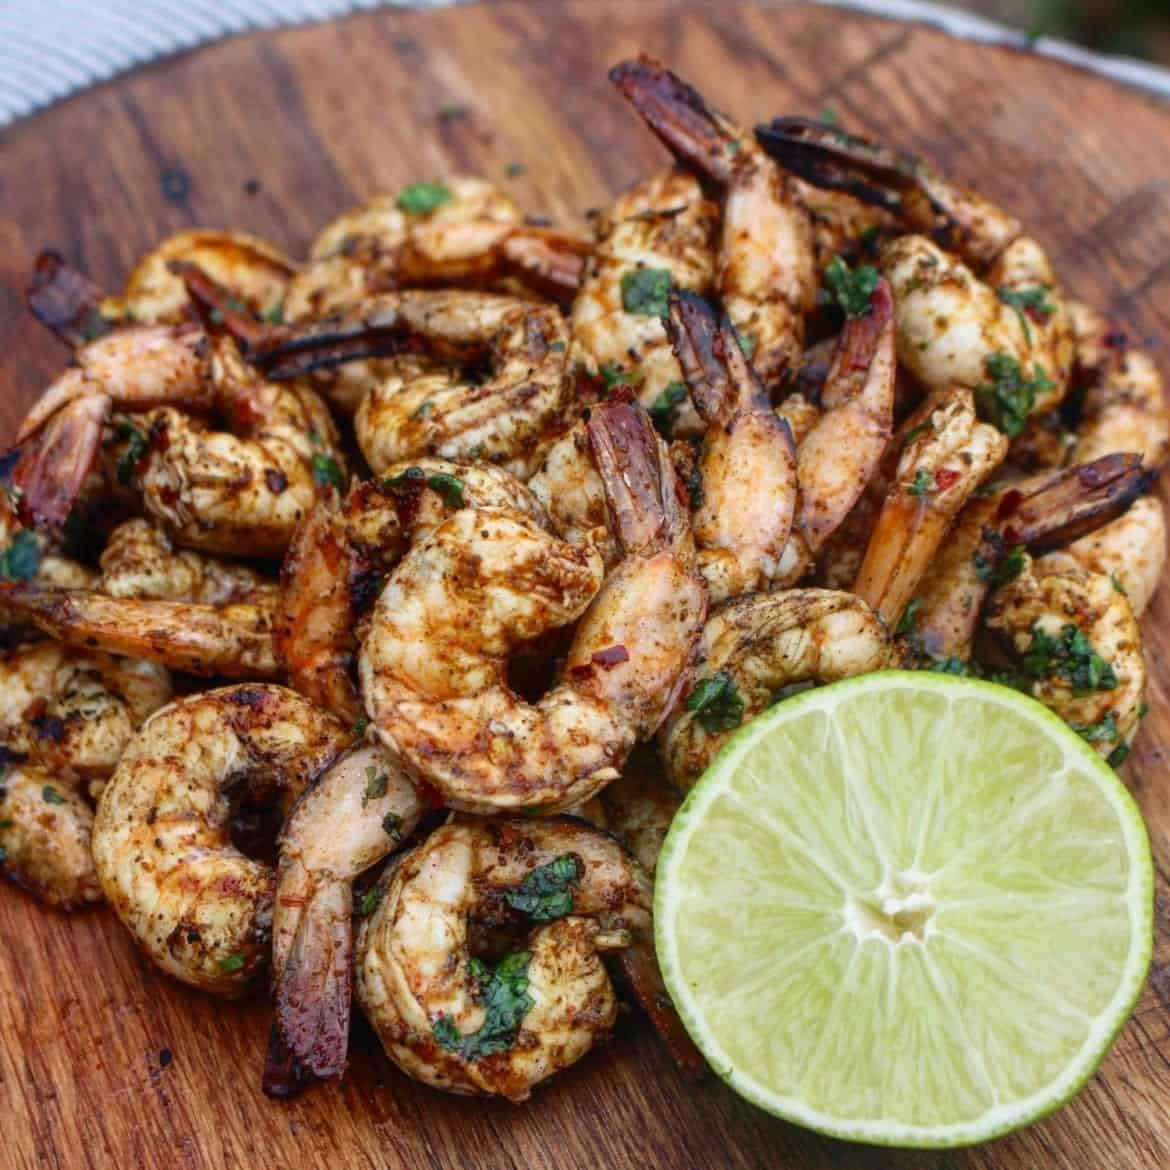 Chile lime shrimp ready to eat